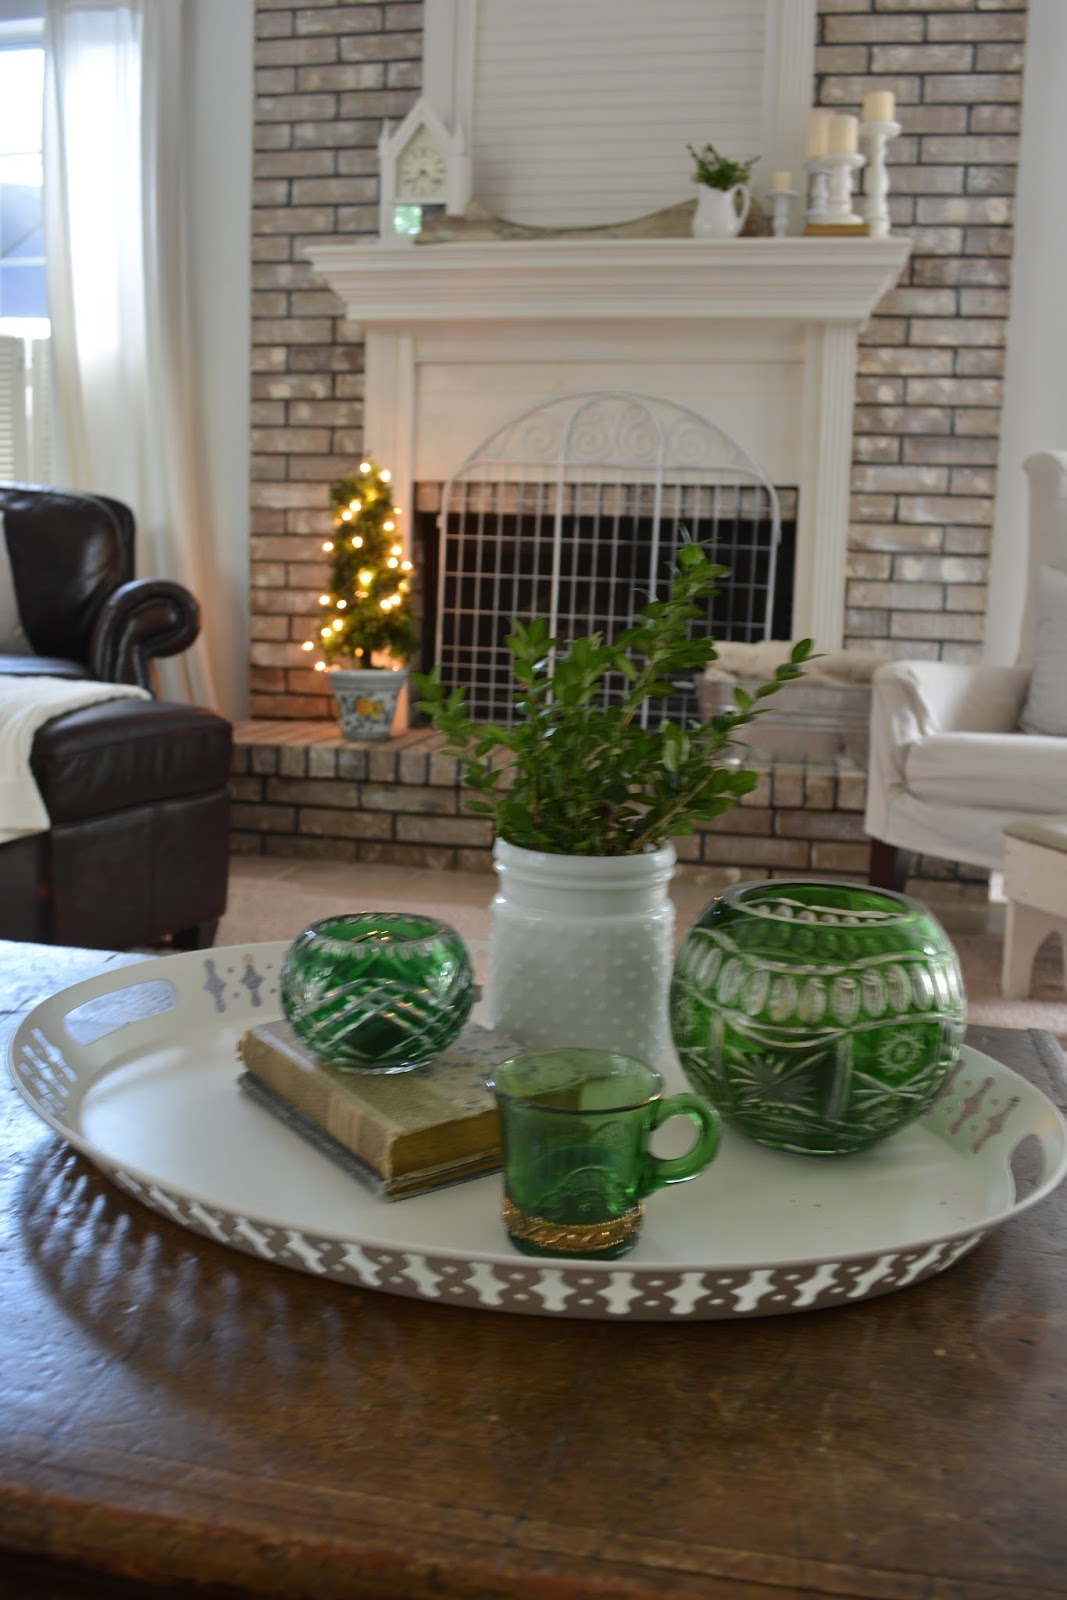 Let's Add Sprinkles Blog, Fireplace, Topiary